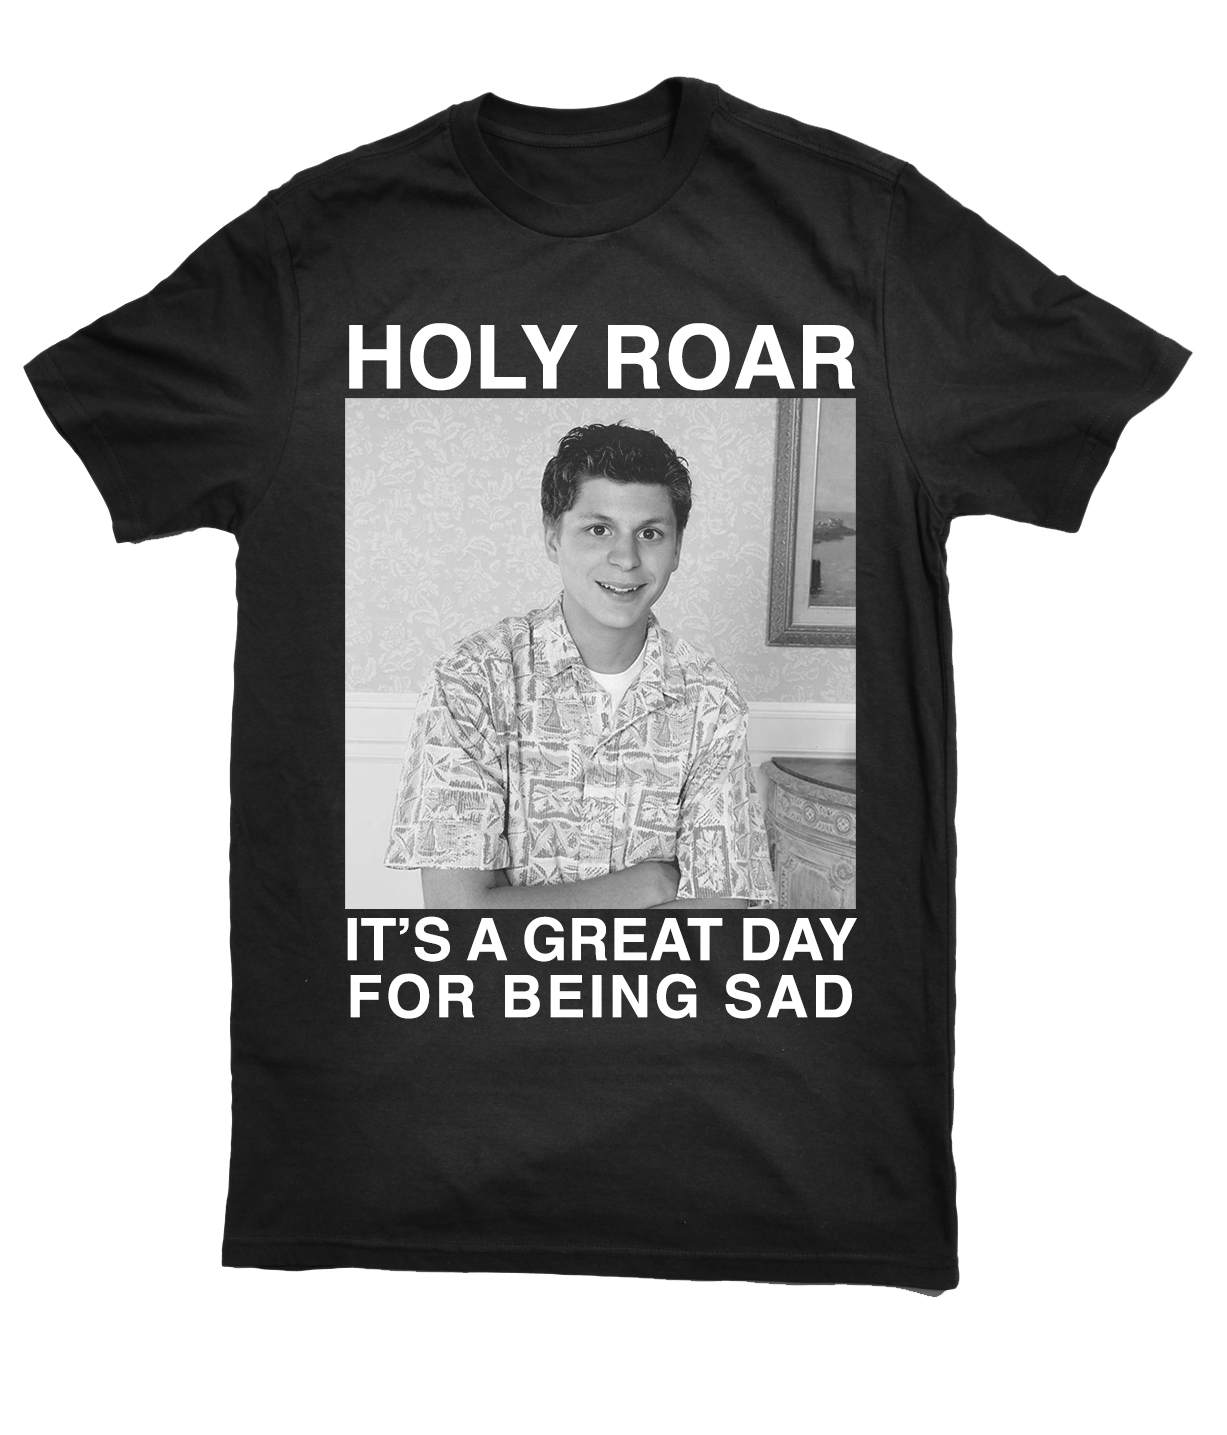 Holy Roar x the optimist shirt PREORDER